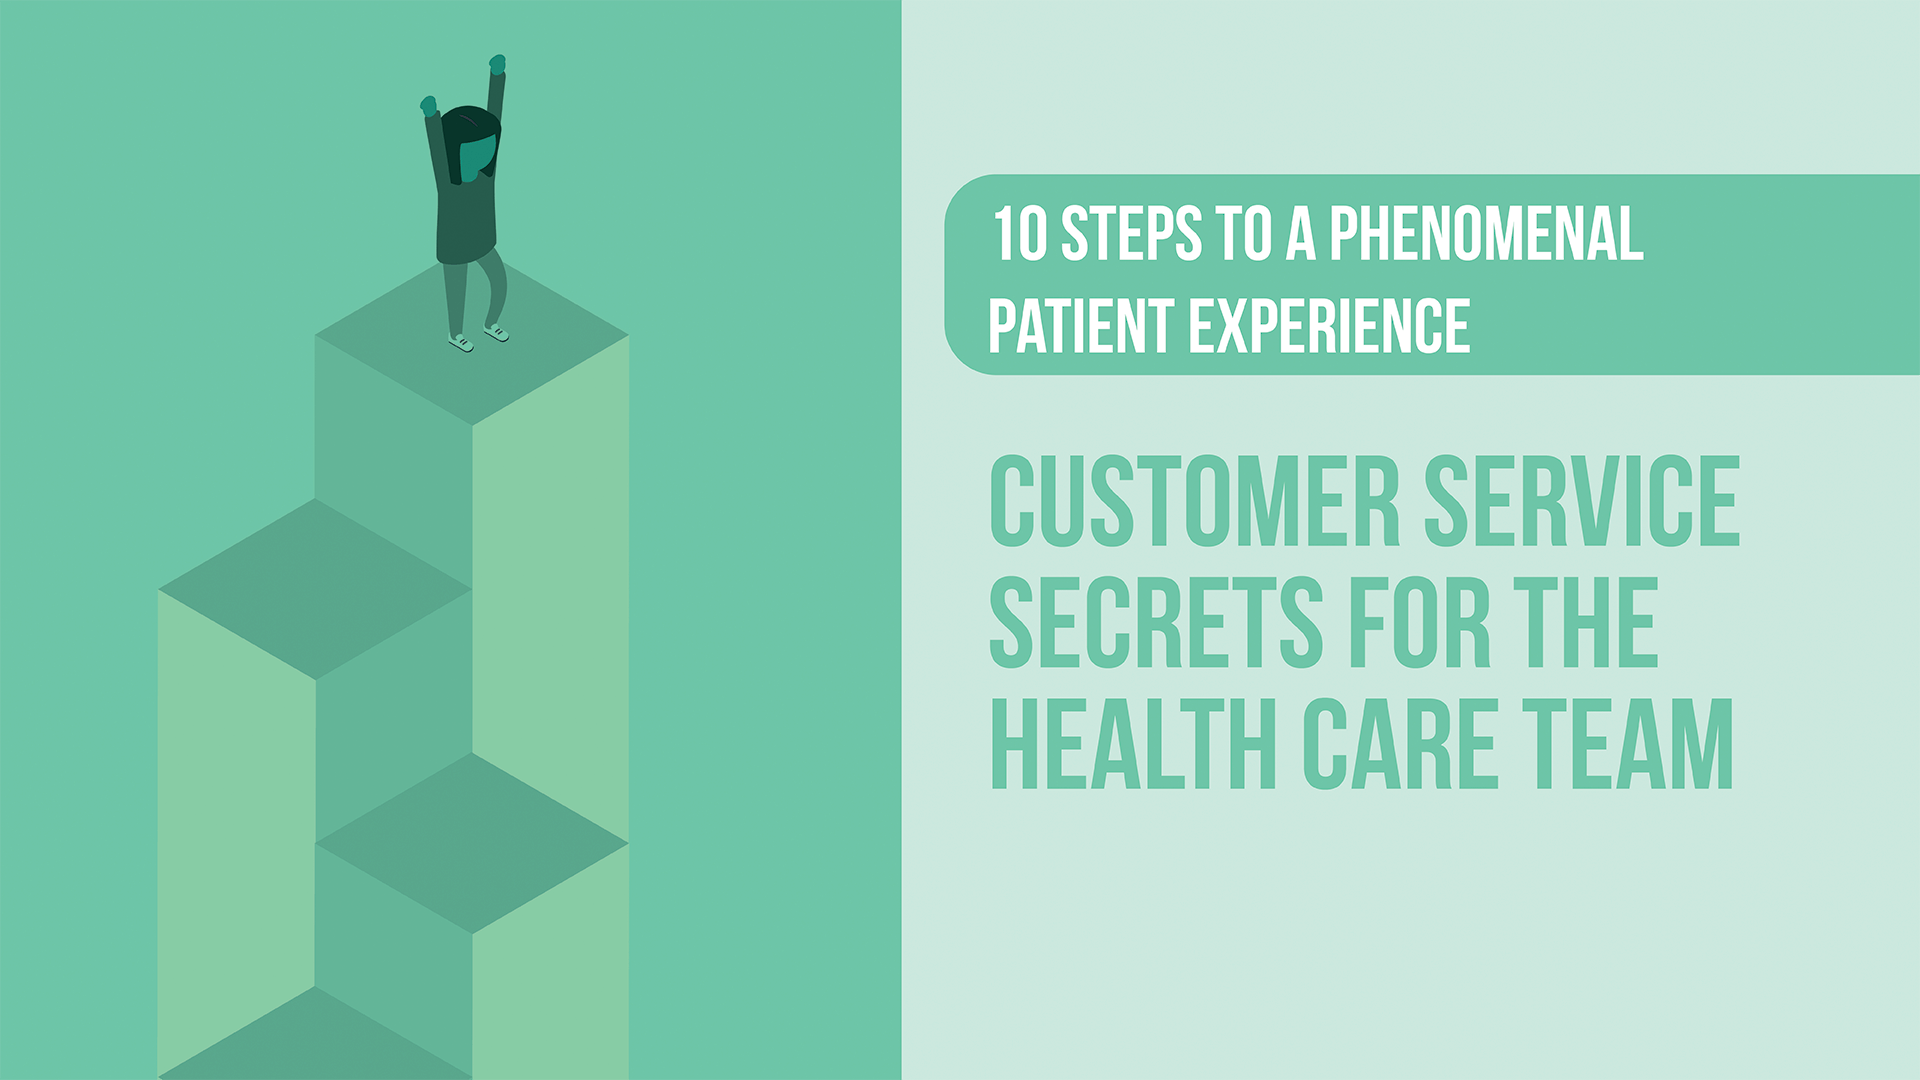 10 Steps To a Phenomenal Patient Experience: Customer Service Secrets for the Healthcare Team